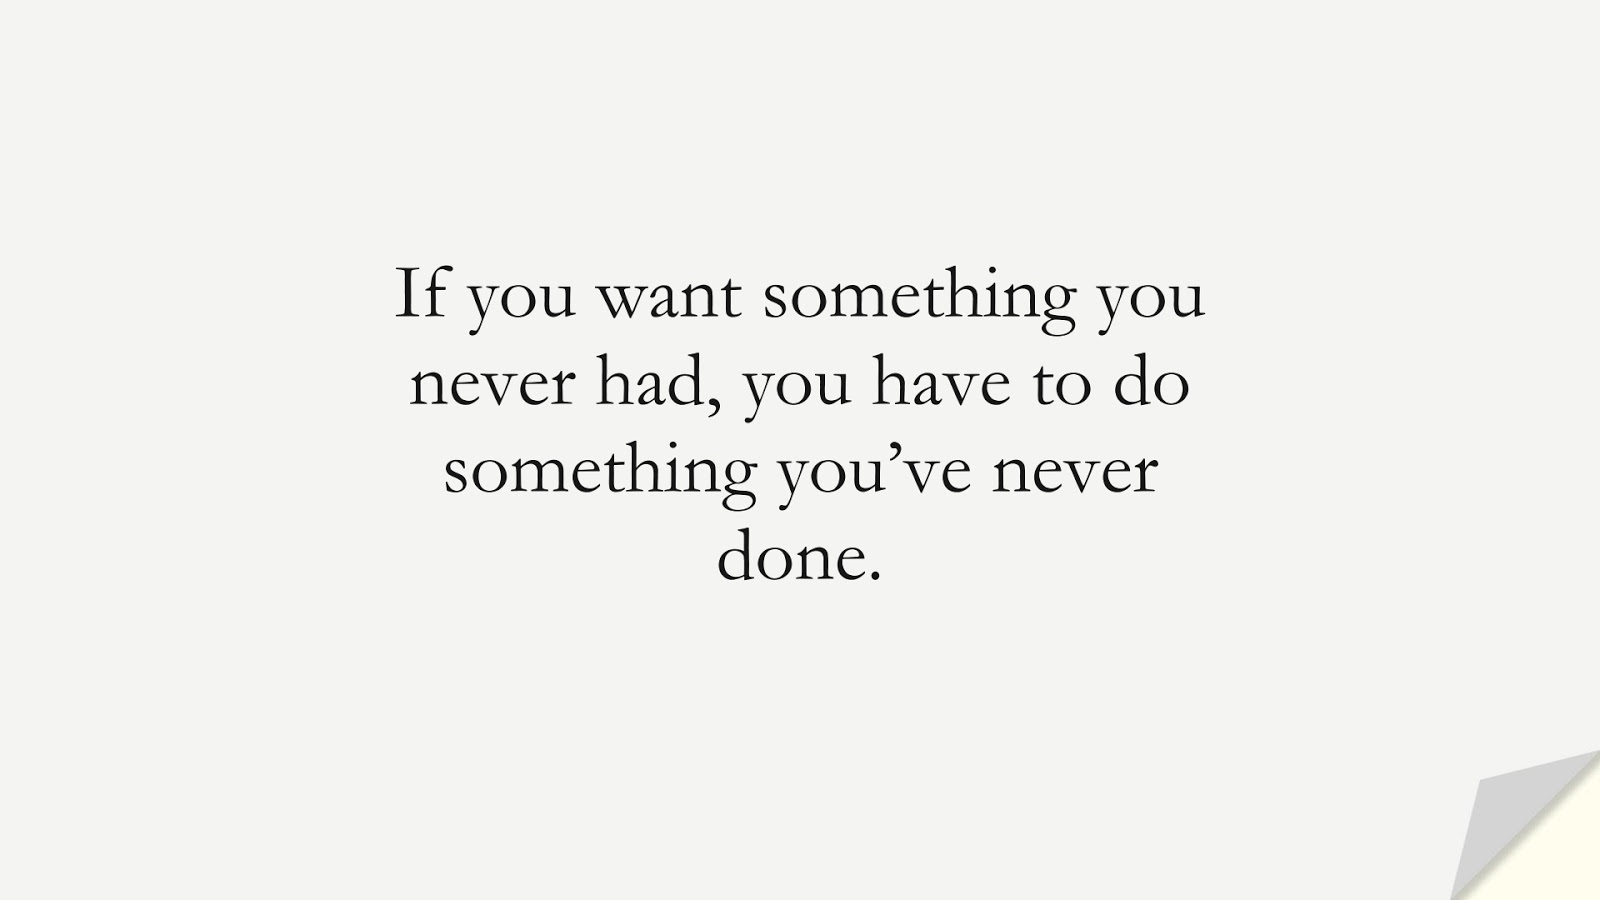 If you want something you never had, you have to do something you've never done.FALSE